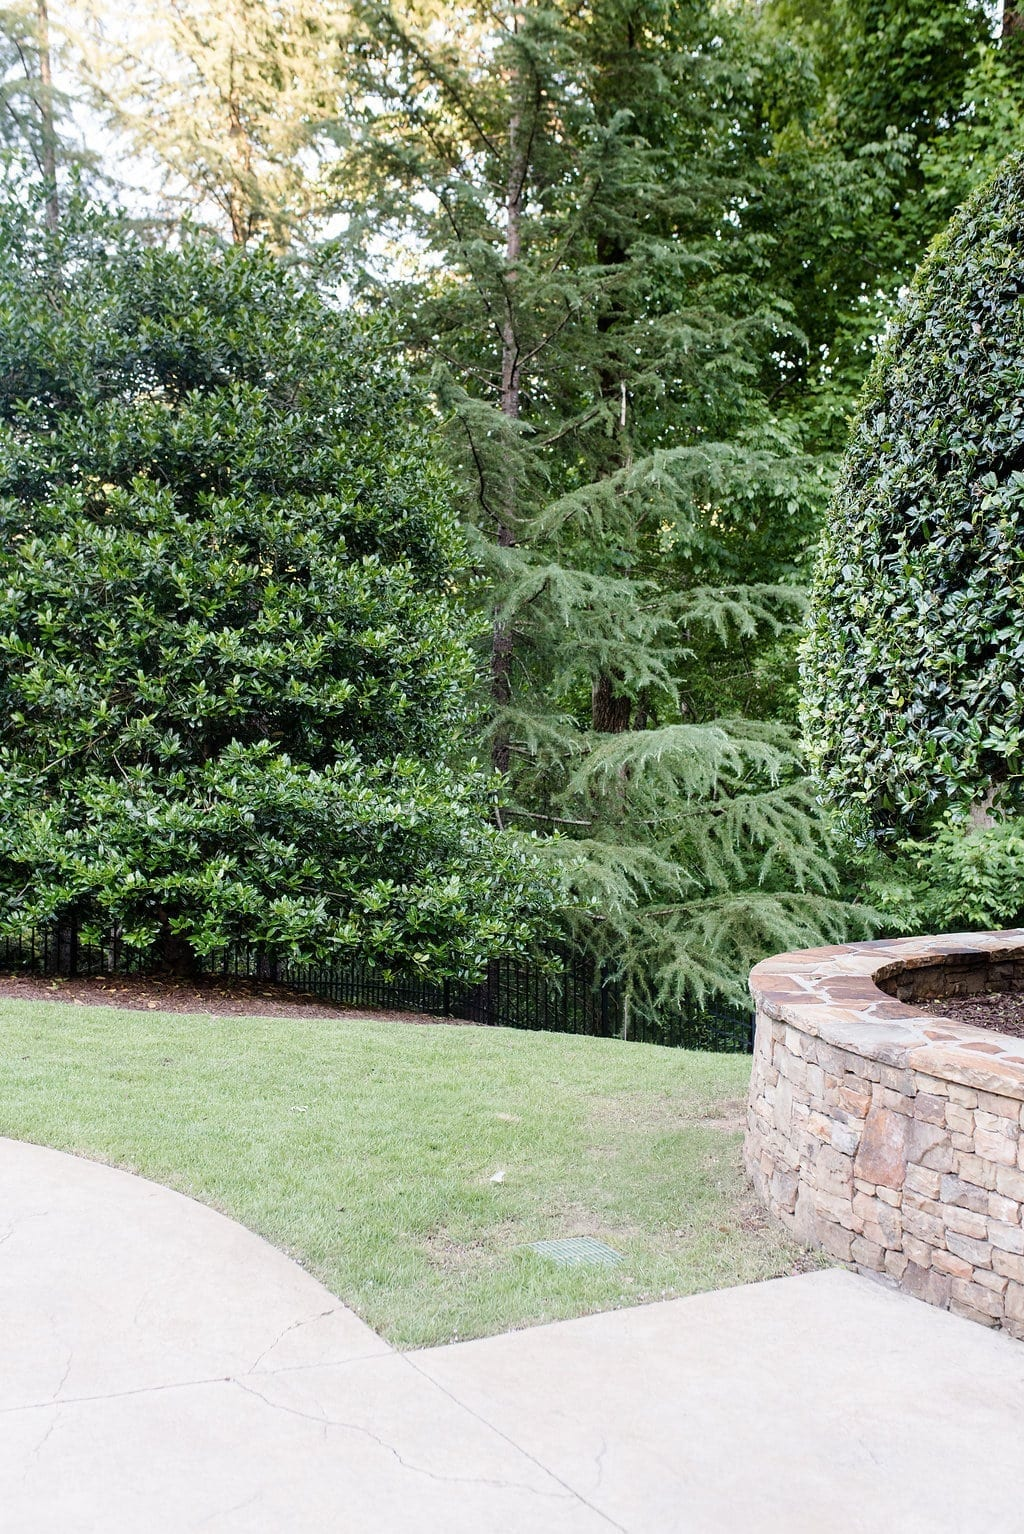 Using holly trees for yard privacy and backyard screening.